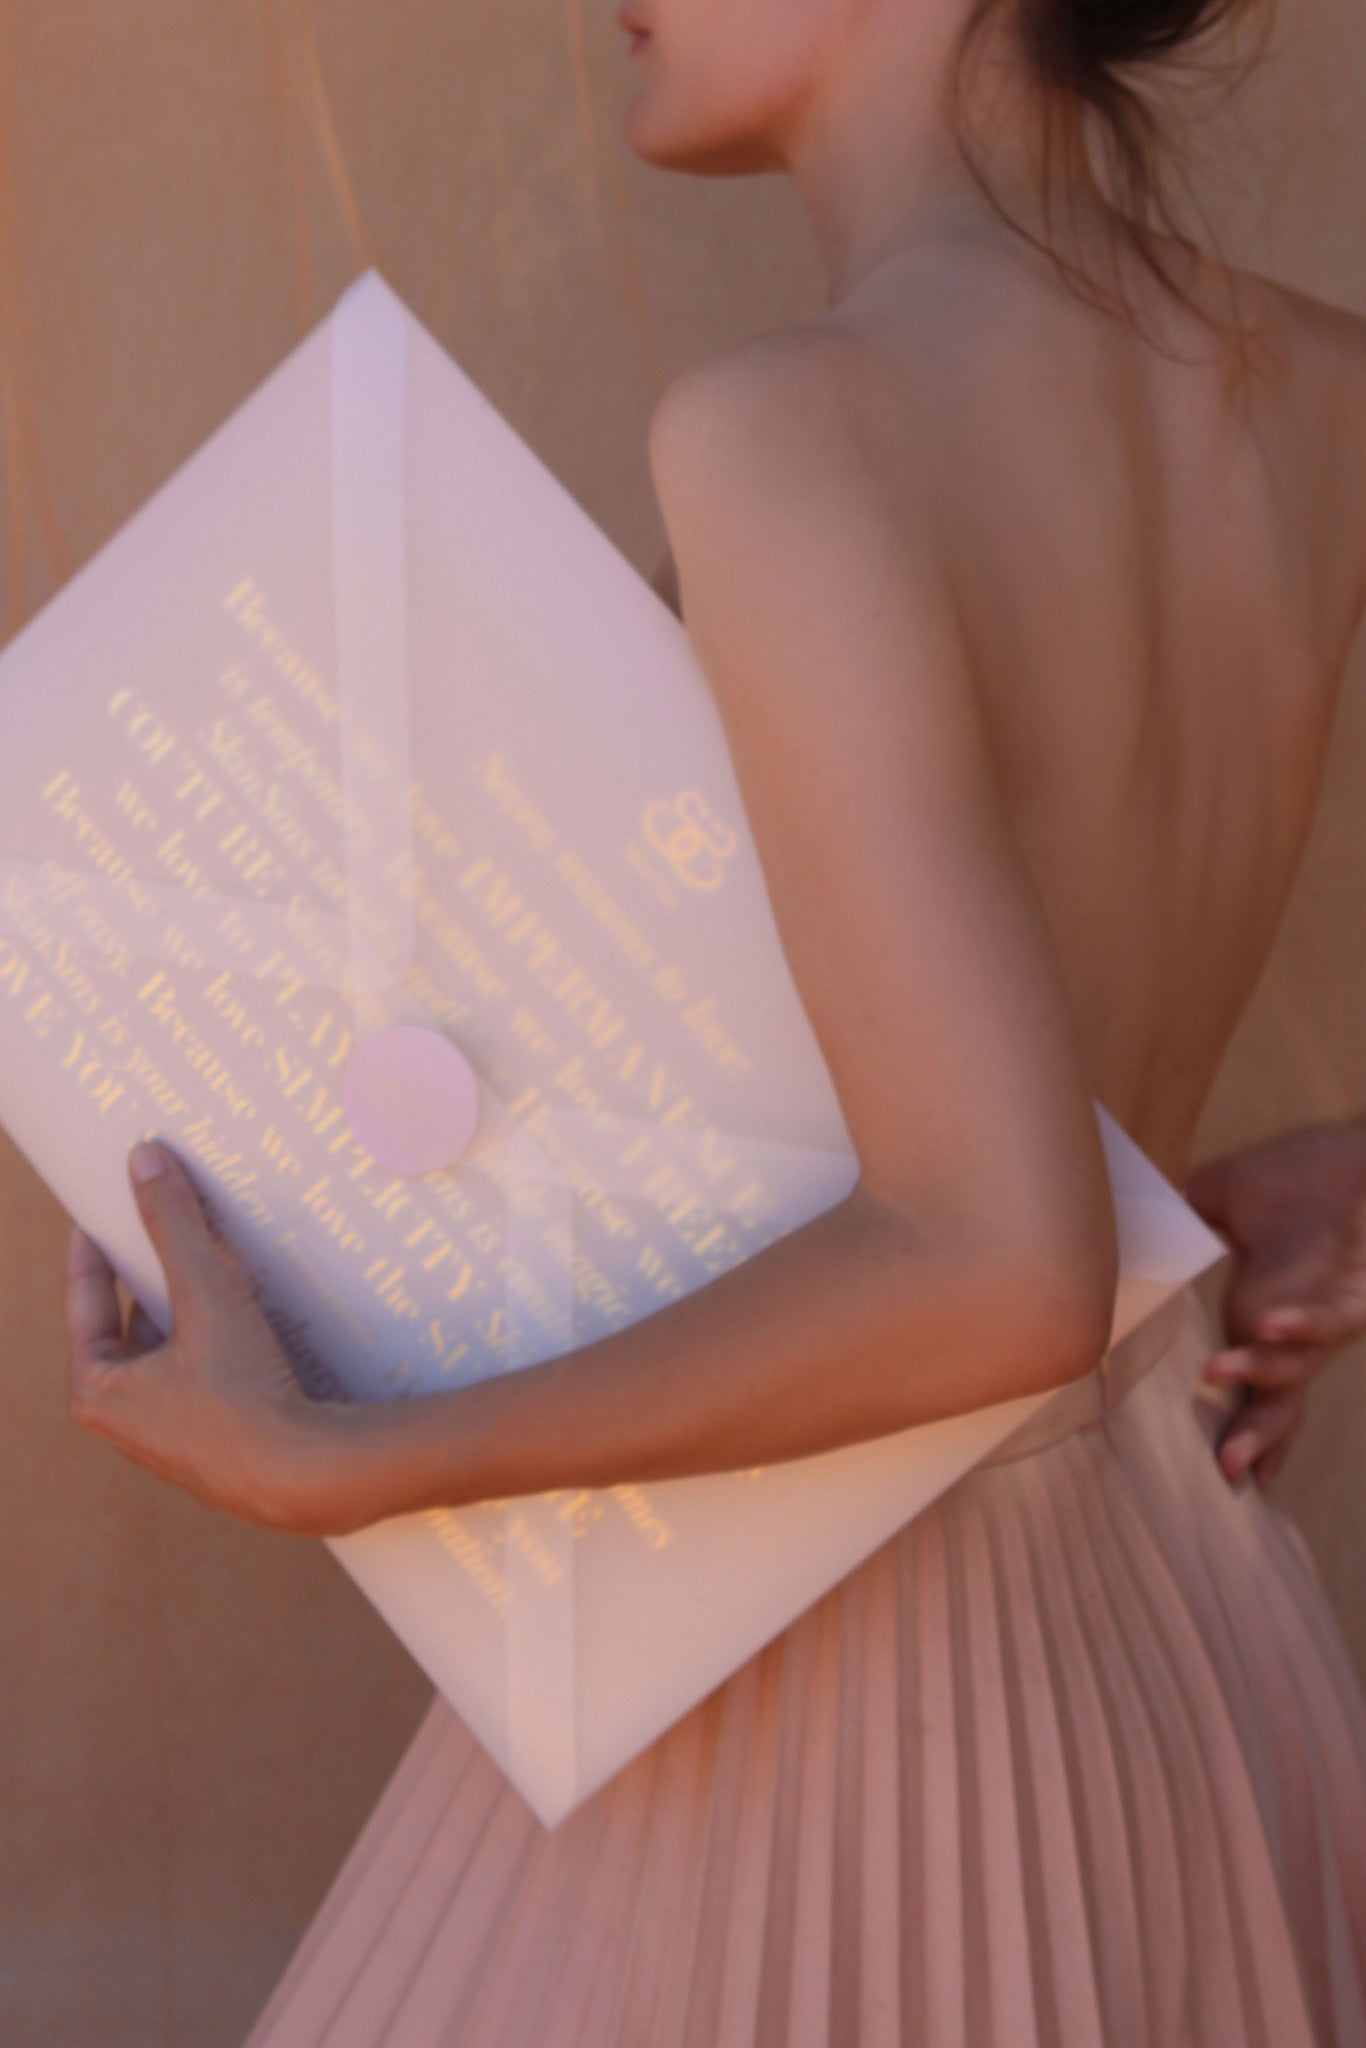 SkinSins packaging, oversized clutch envelope in nude pink